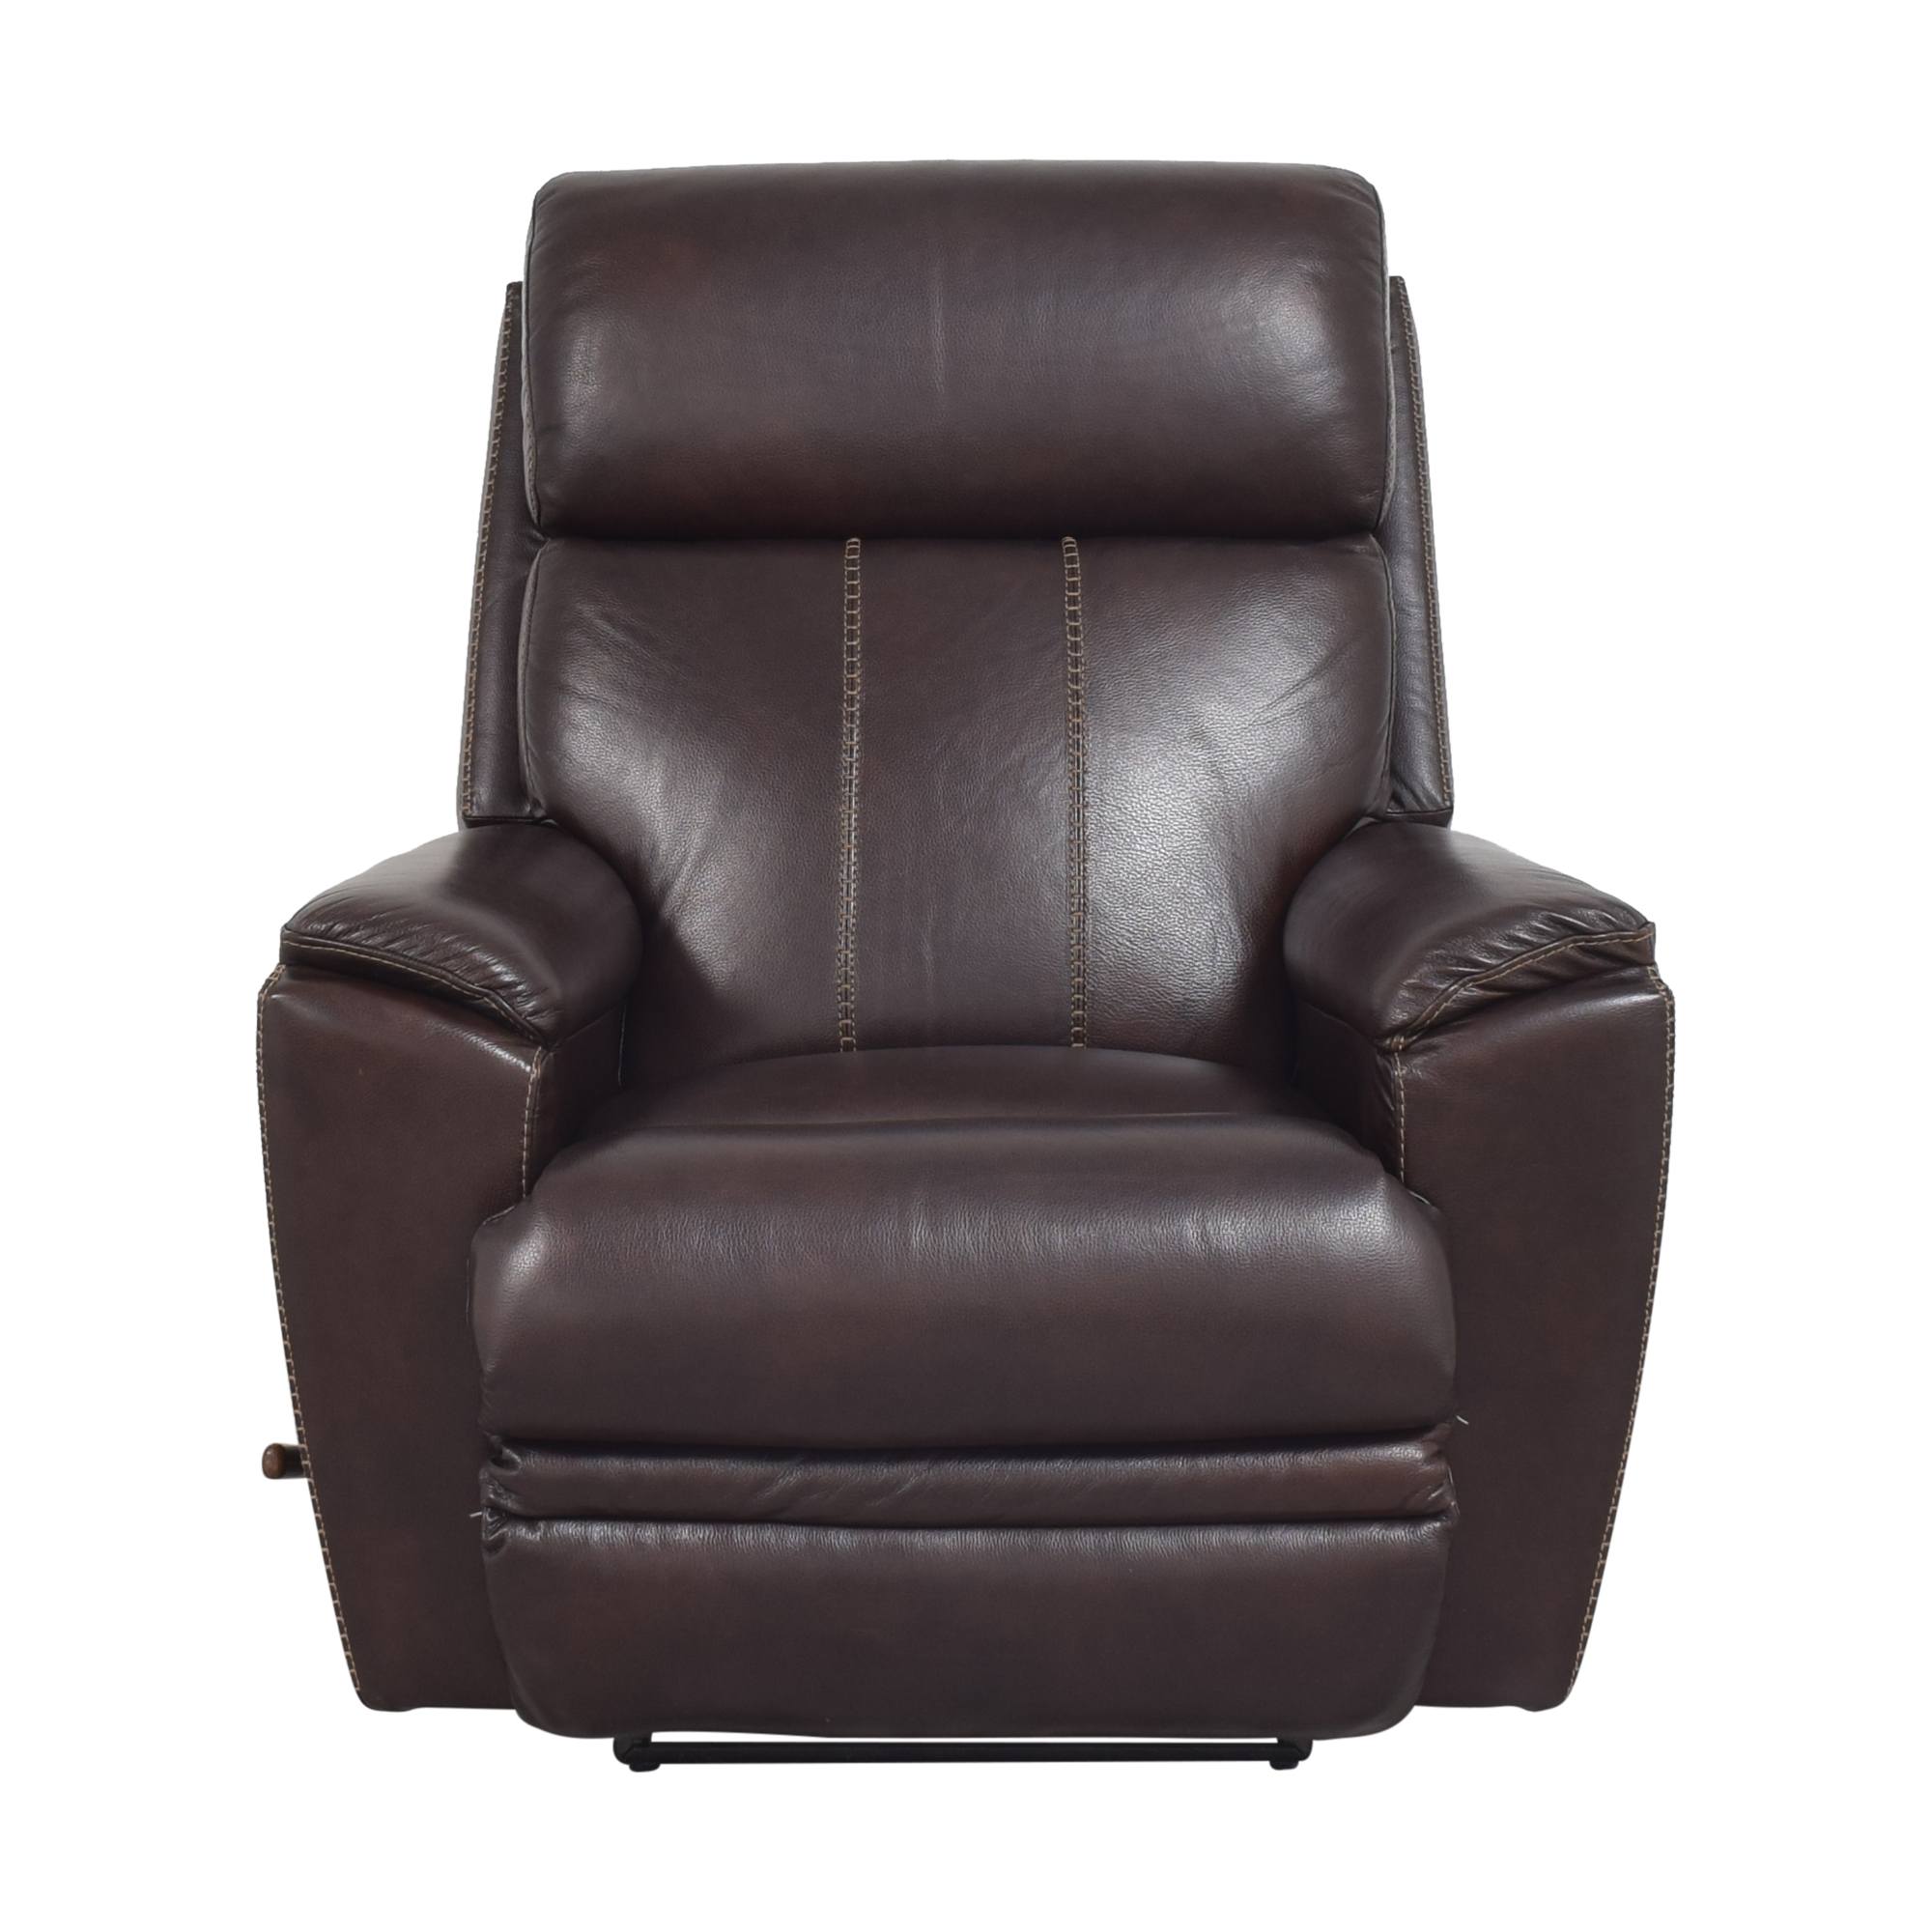 buy La-Z-Boy Talladega Rocking Recliner La-Z-Boy Recliners